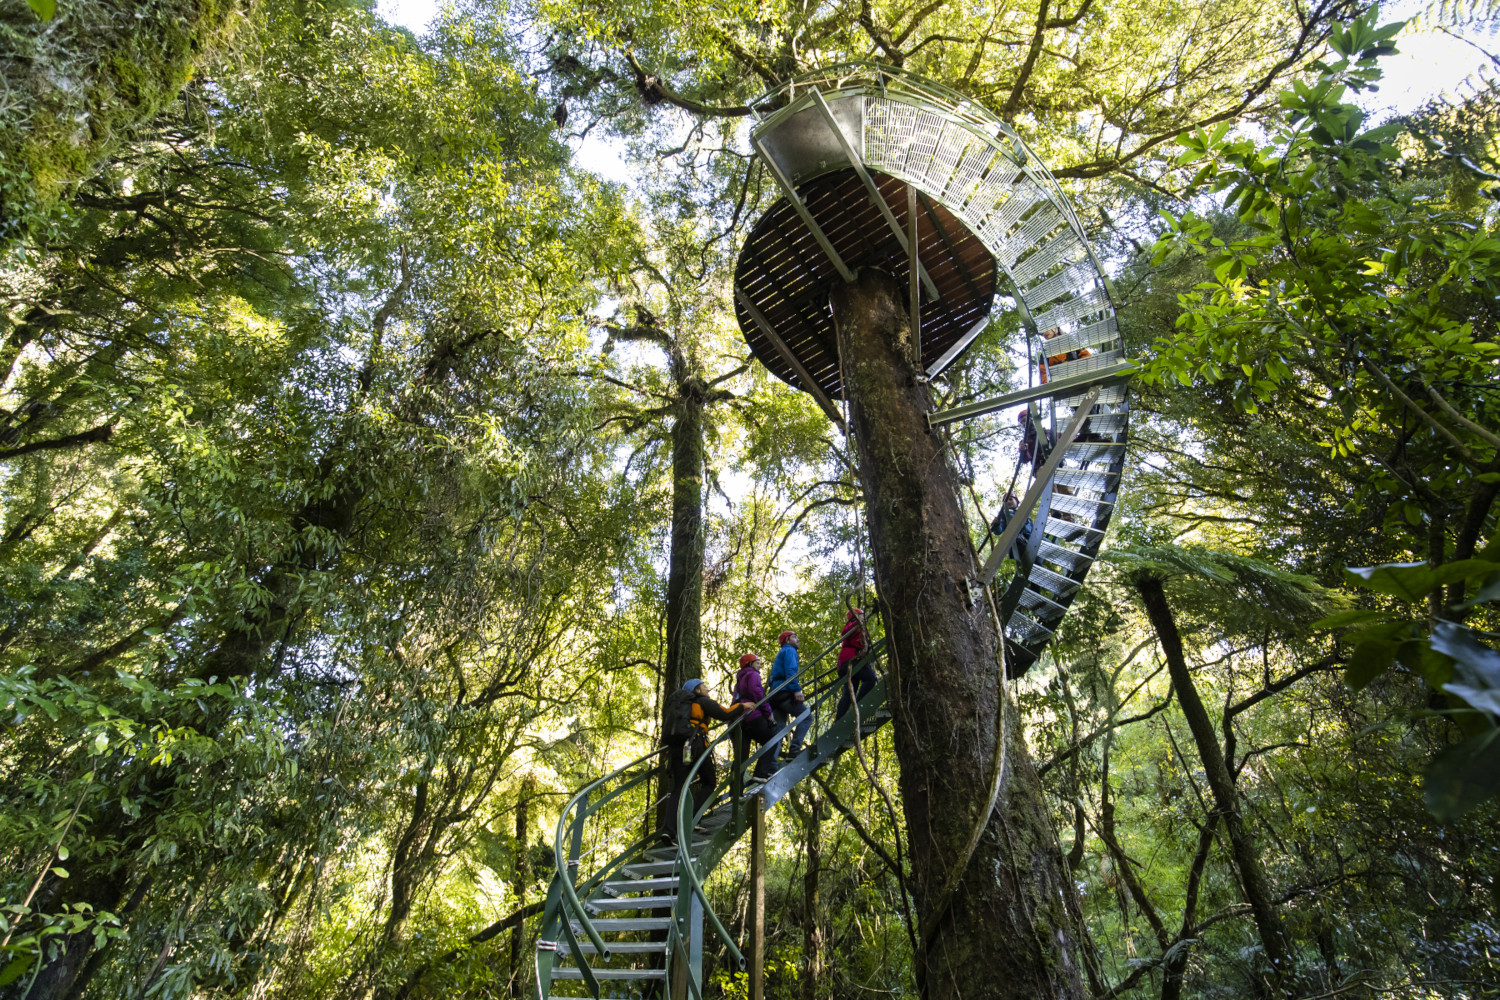 People going up a spiral staircase around a tree